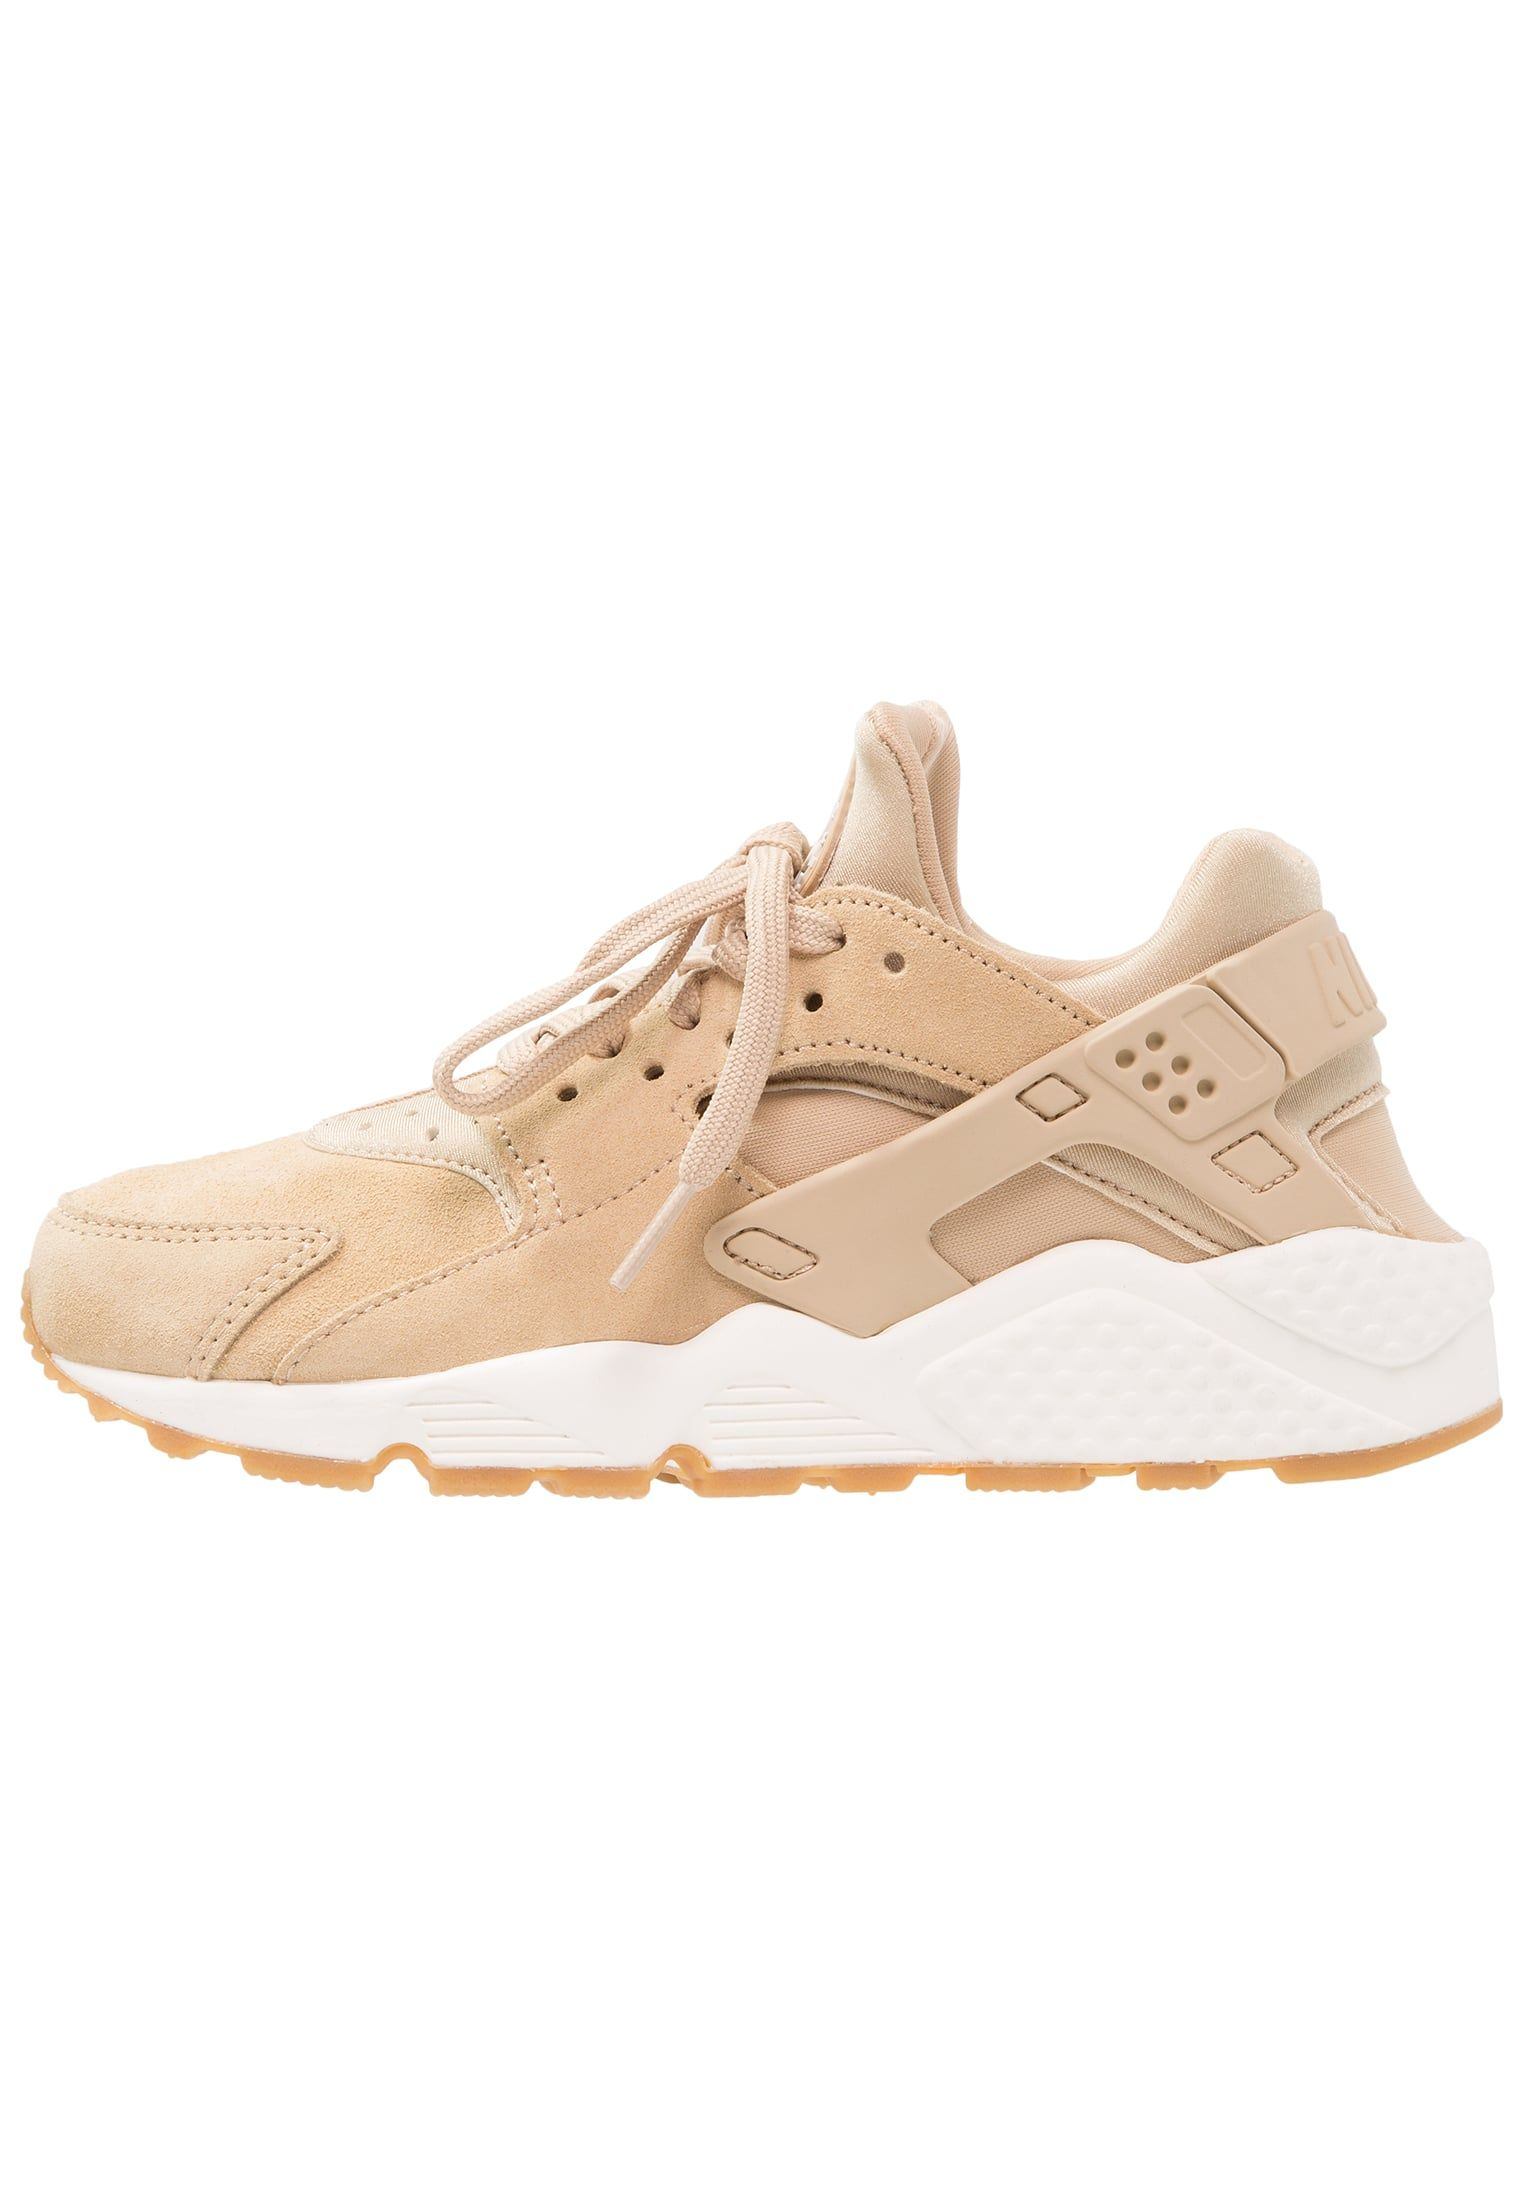 Baskets Nike Air Huarache Run Sd Beige FemmeNike